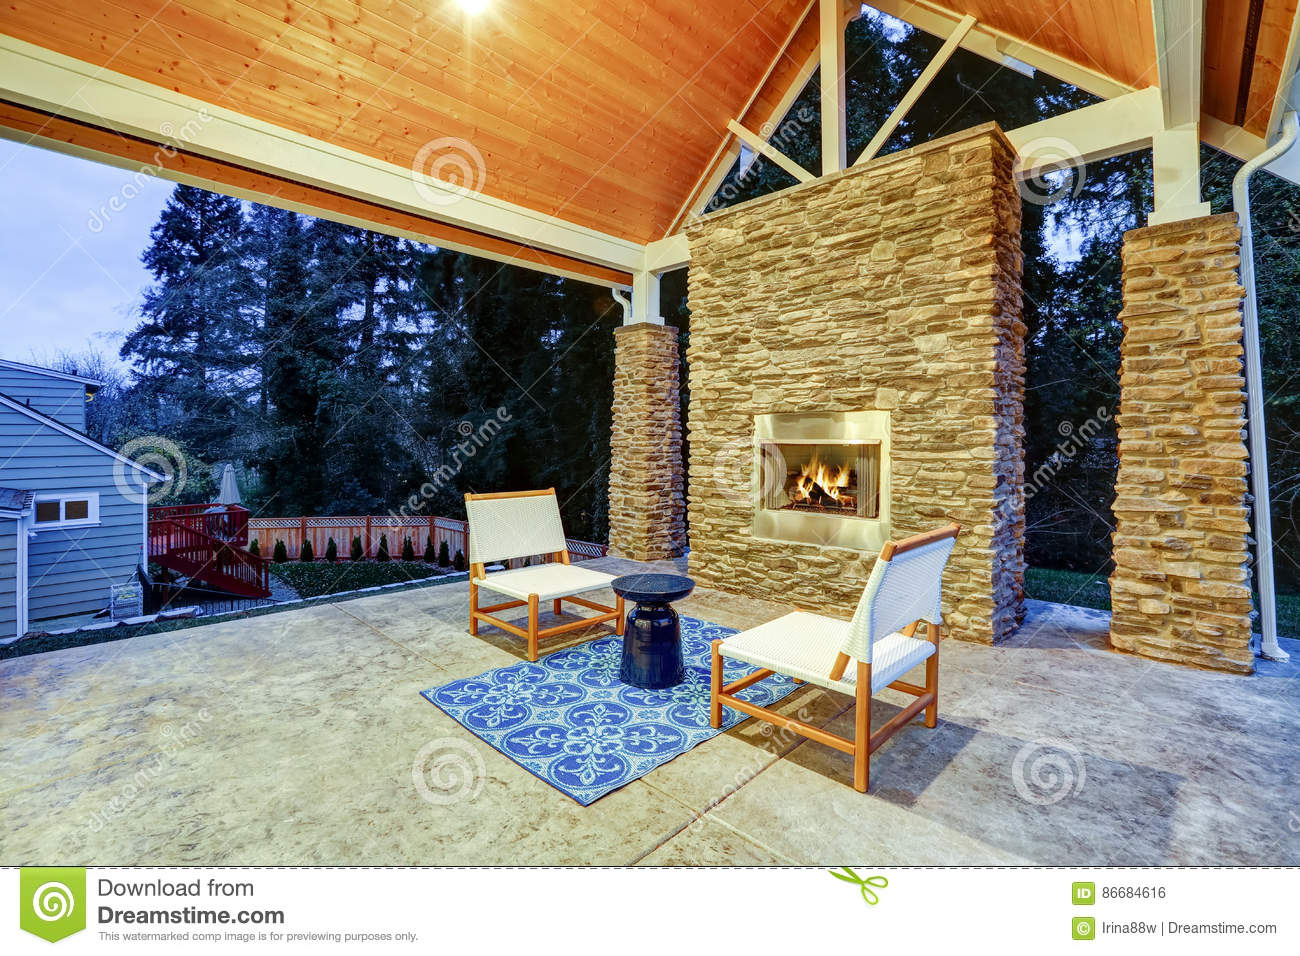 Chic Covered Back Patio With Built In Gas Fireplace Stock Photo Image Of Stainless Spring 86684616